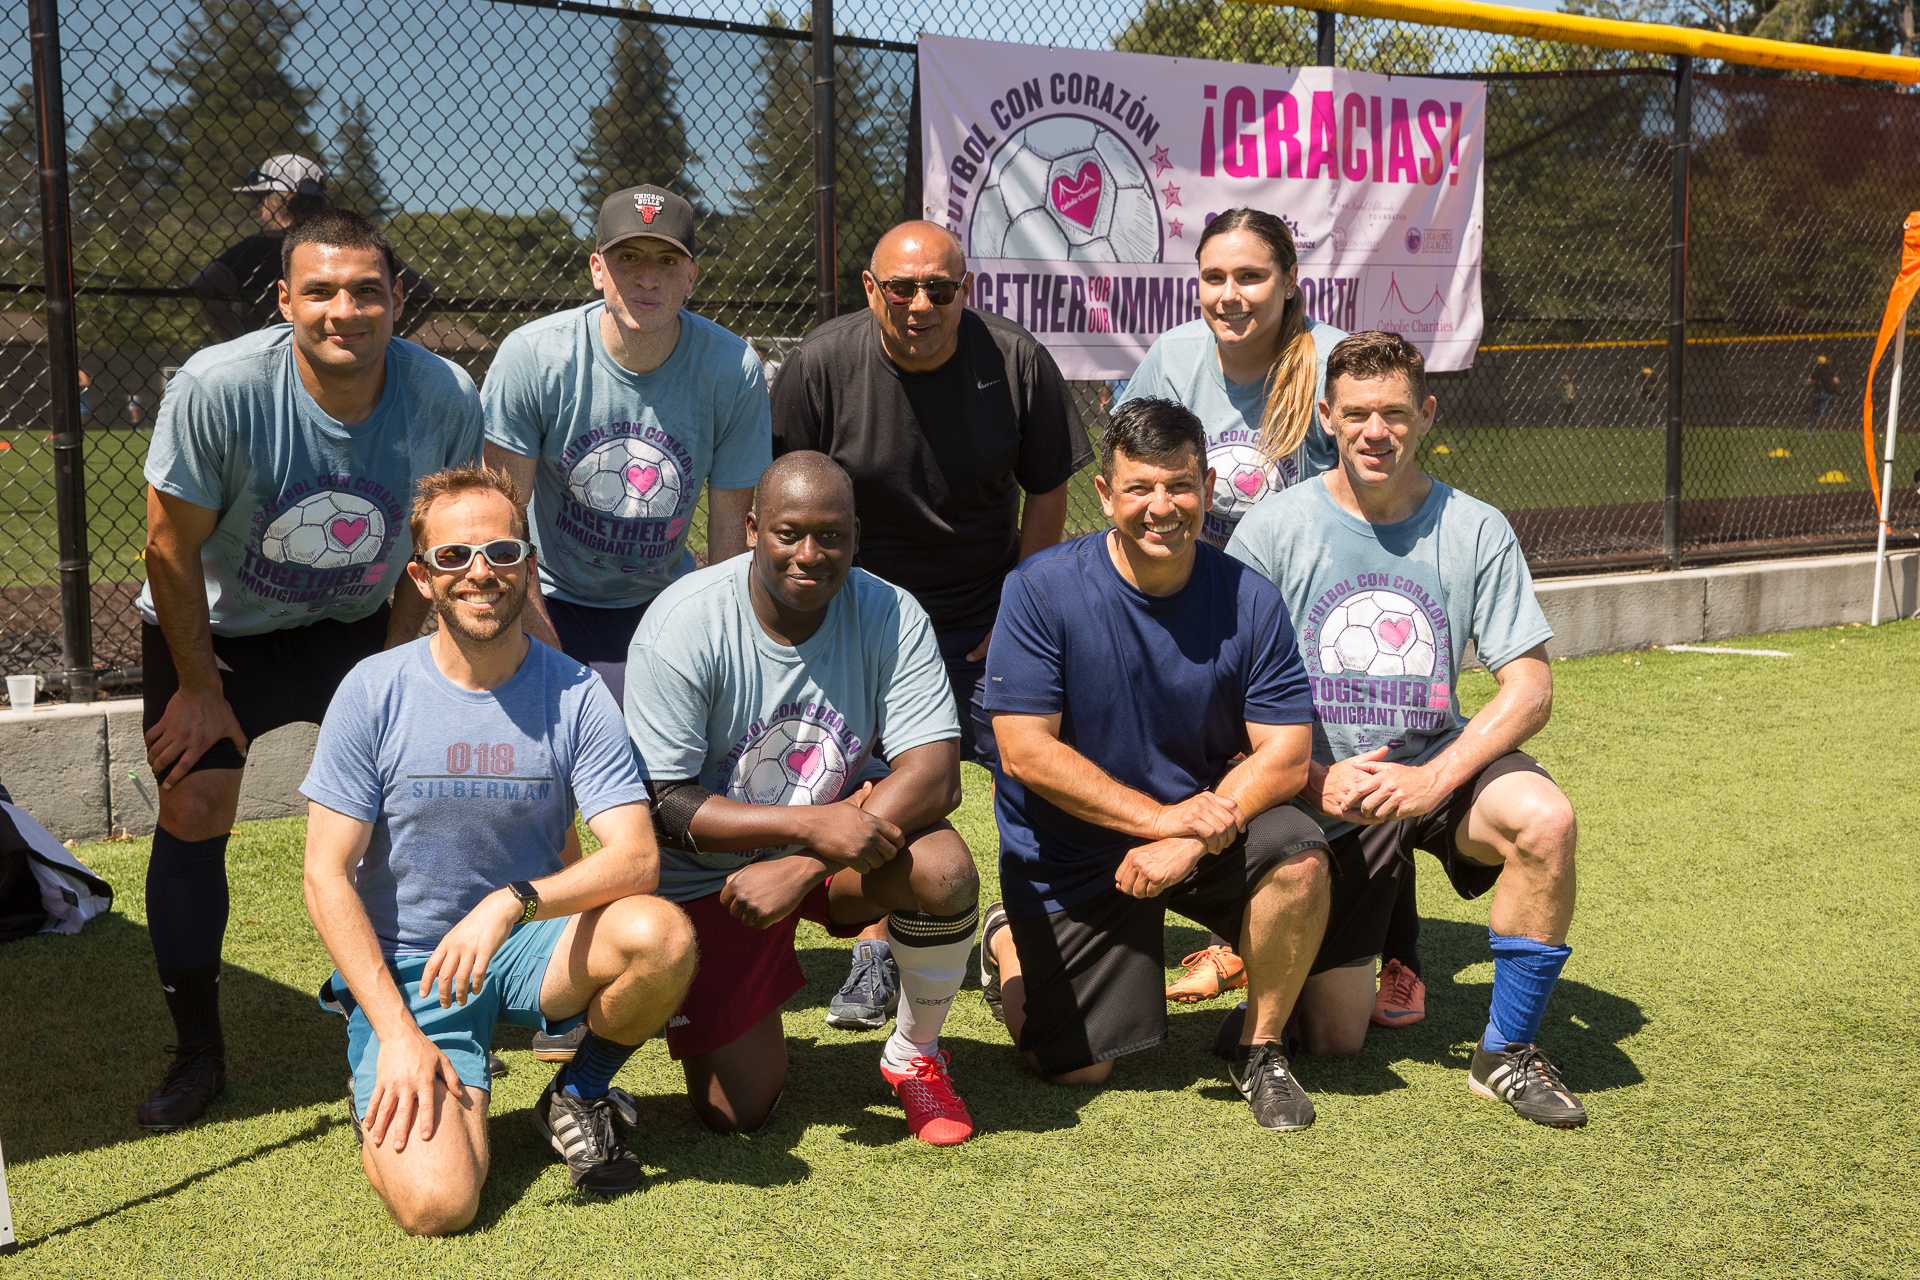 San Mateo County Sherriff Department team at Futbol con Corazon